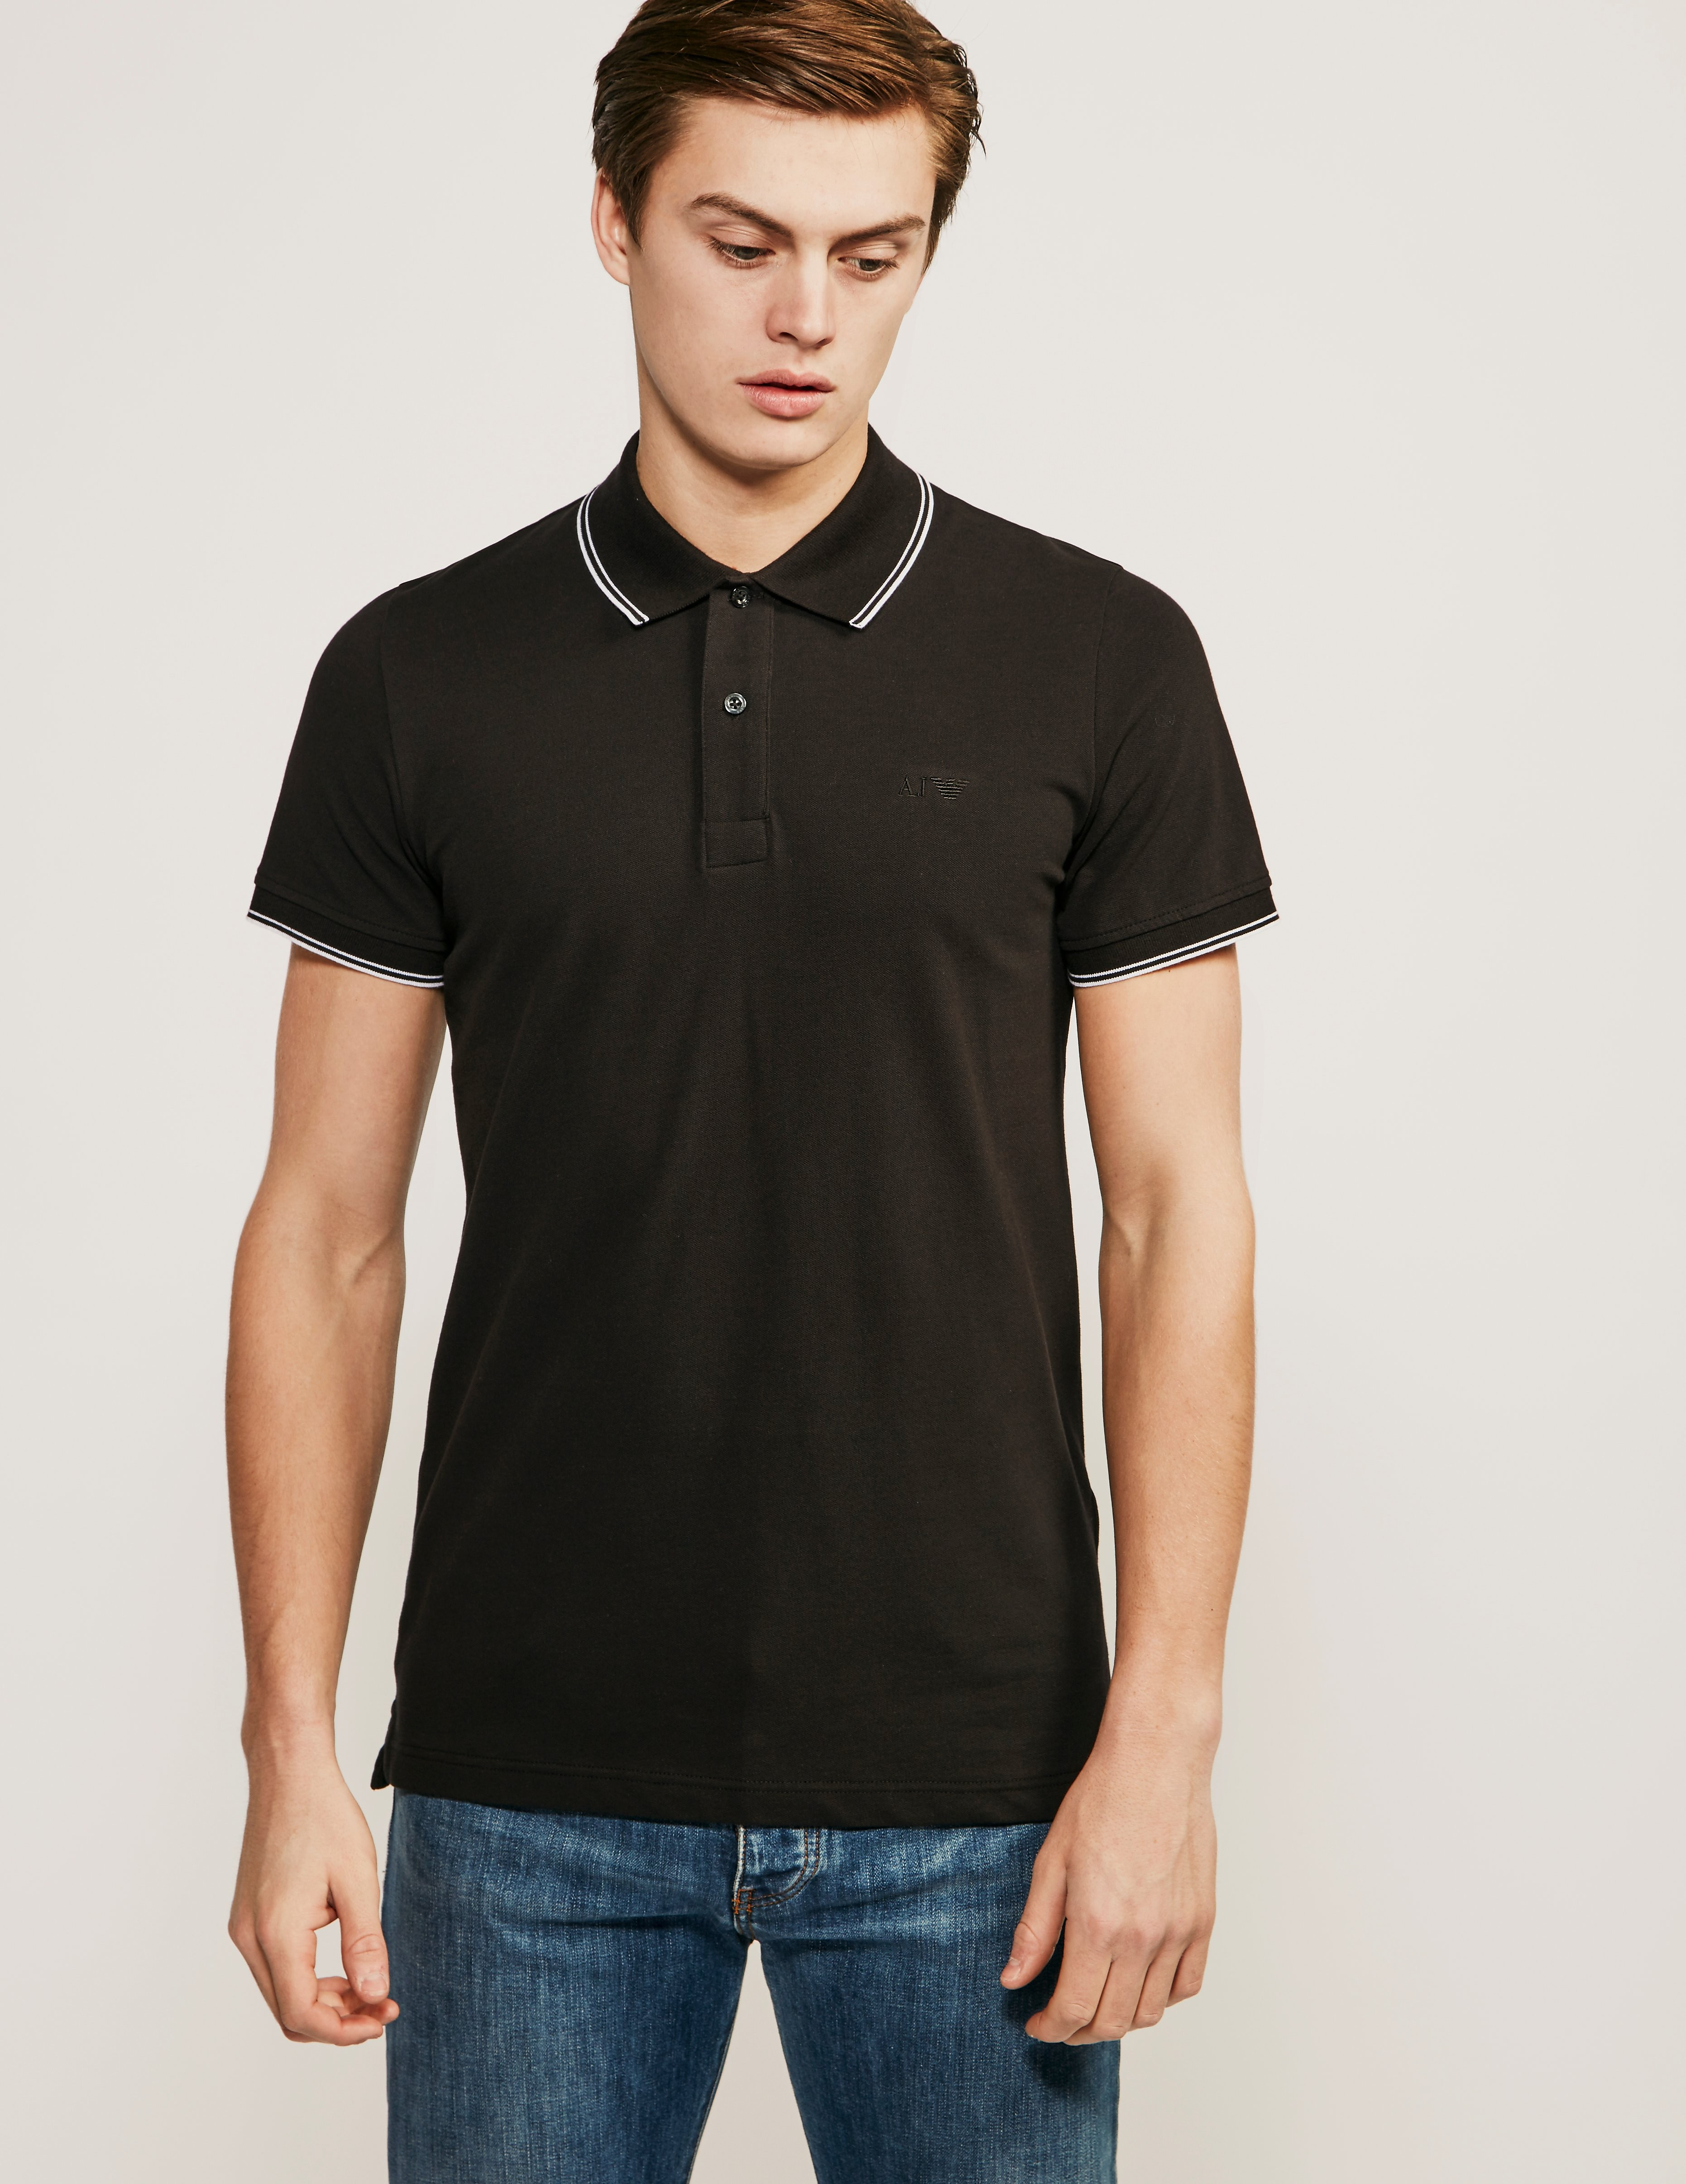 Armani Jeans Contrast Tipped Short Sleeve Polo Shirt